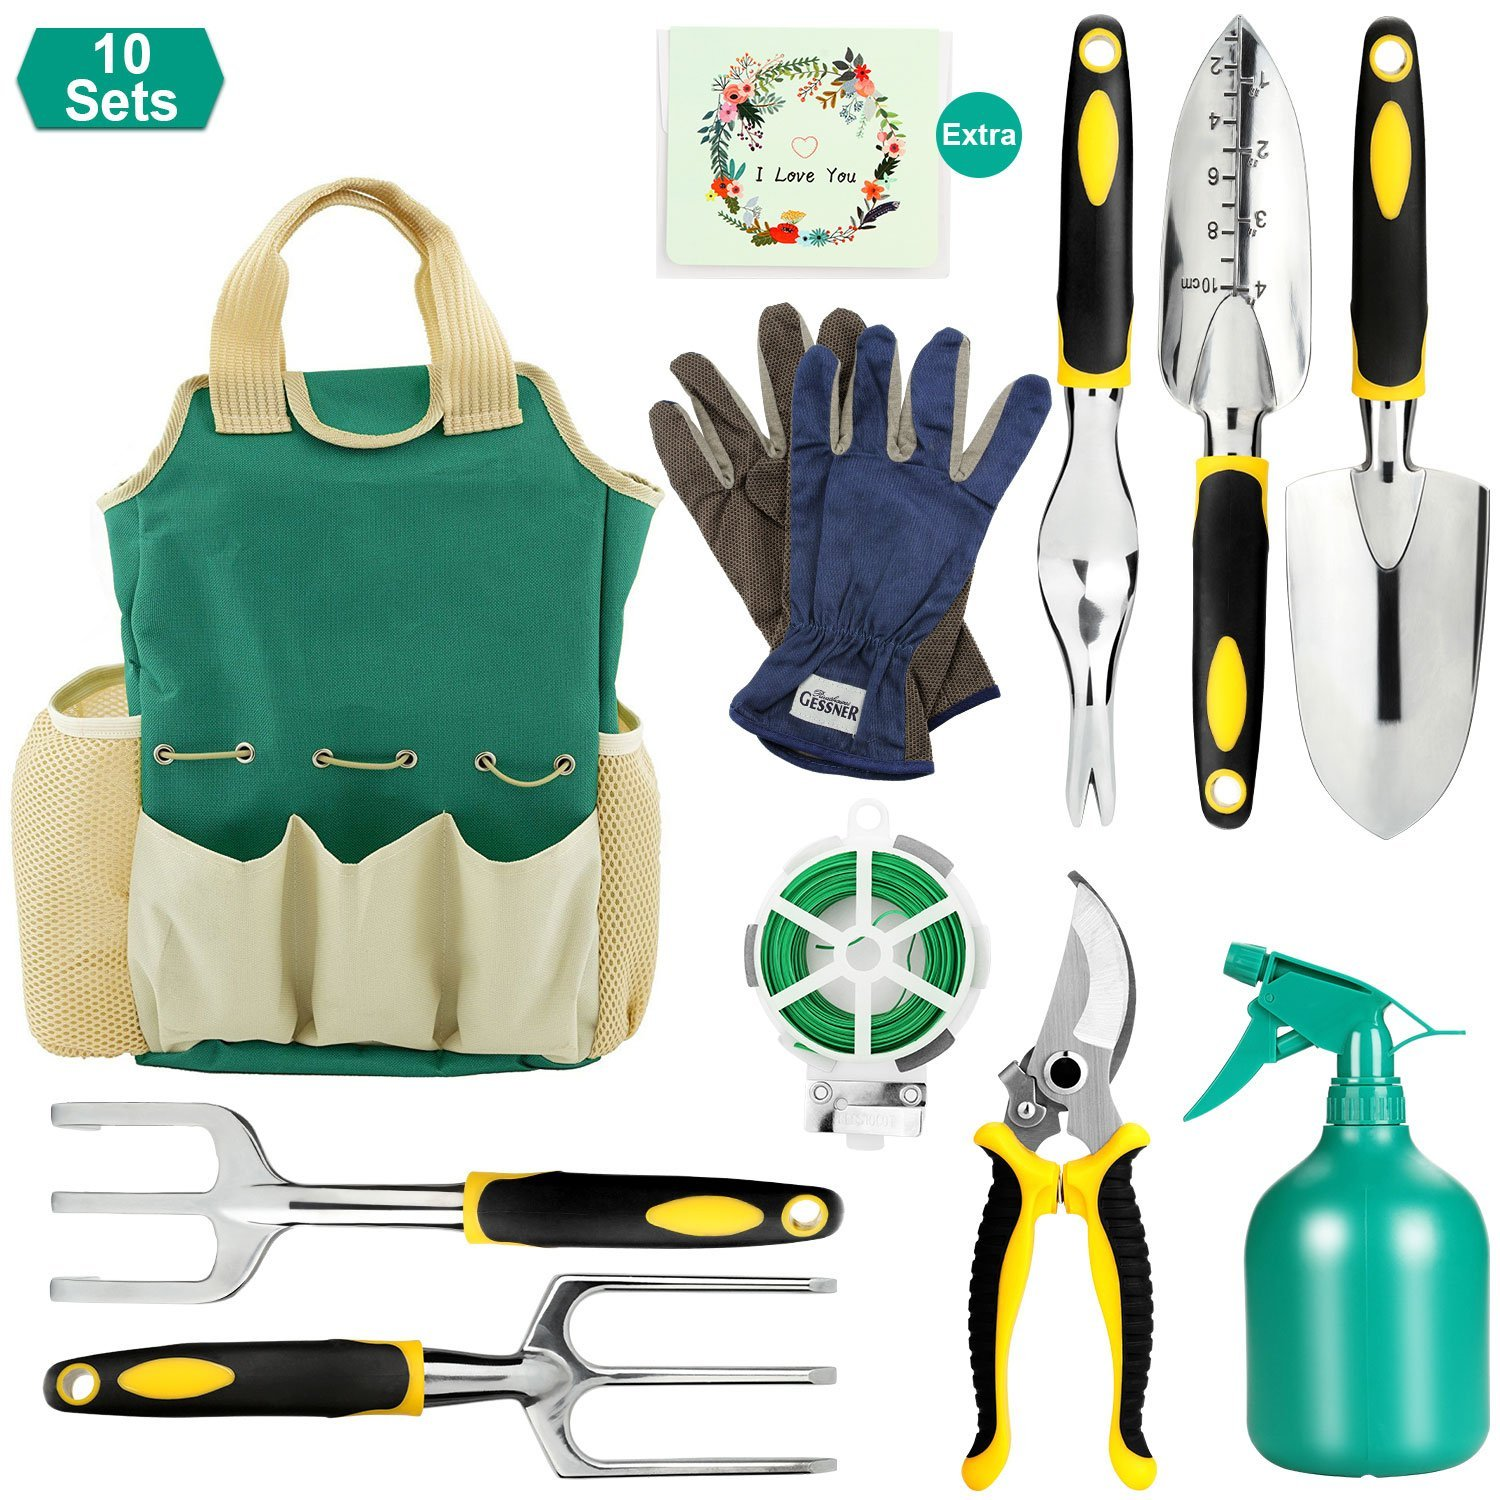 Fitnate Garden Tool Set, 10PCS Gardening Tools With Garden Storage Bag, Plant Rope, Soft Gloves, Watering Can, Garden Shear & 5pcs Garden Planting Tools